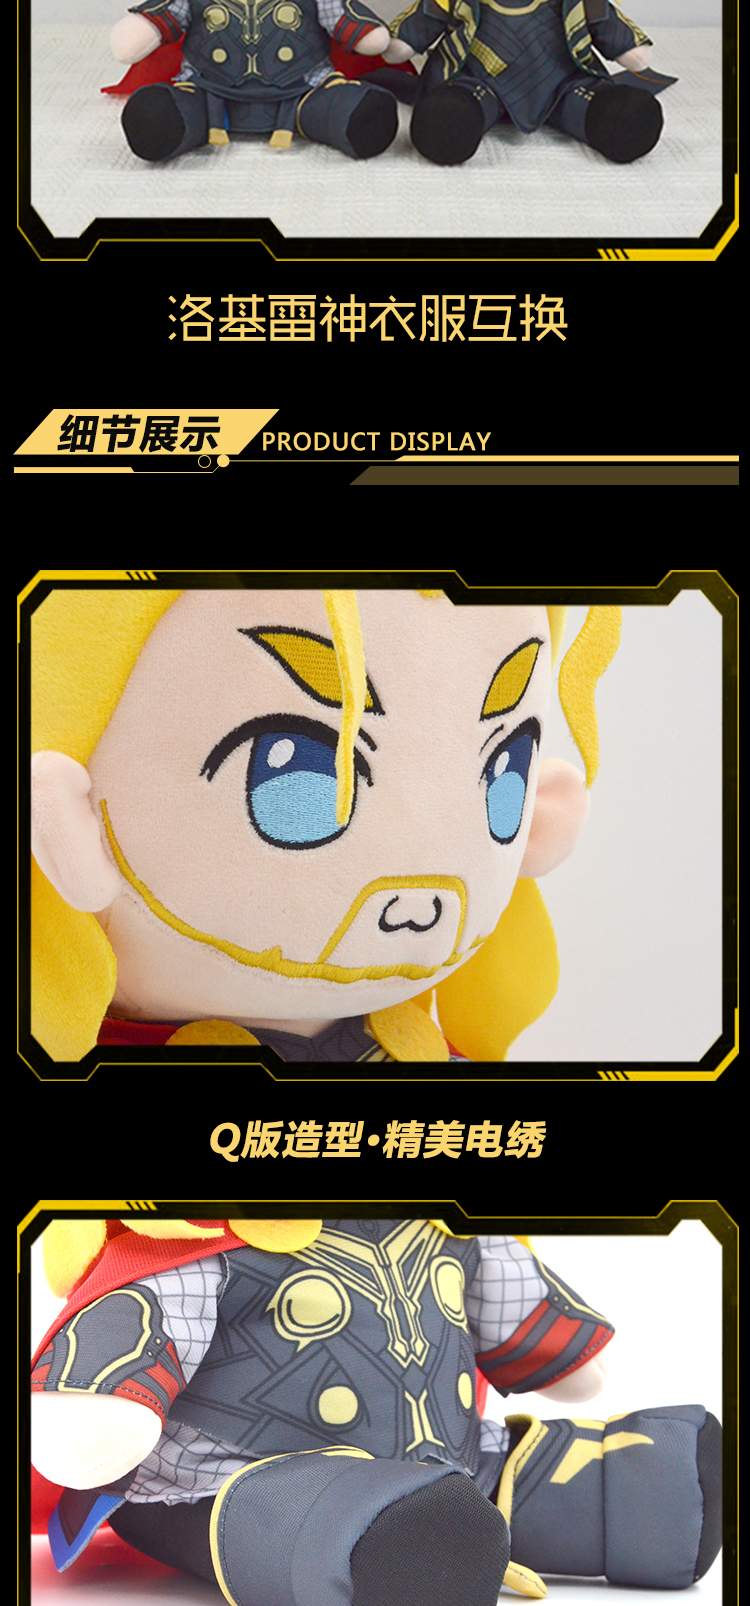 Thor plush toy The Avengers Thor Odinson Loki Q style plush doll cosplay 30cm clothe can taken off soft pillow supplies gift (6)